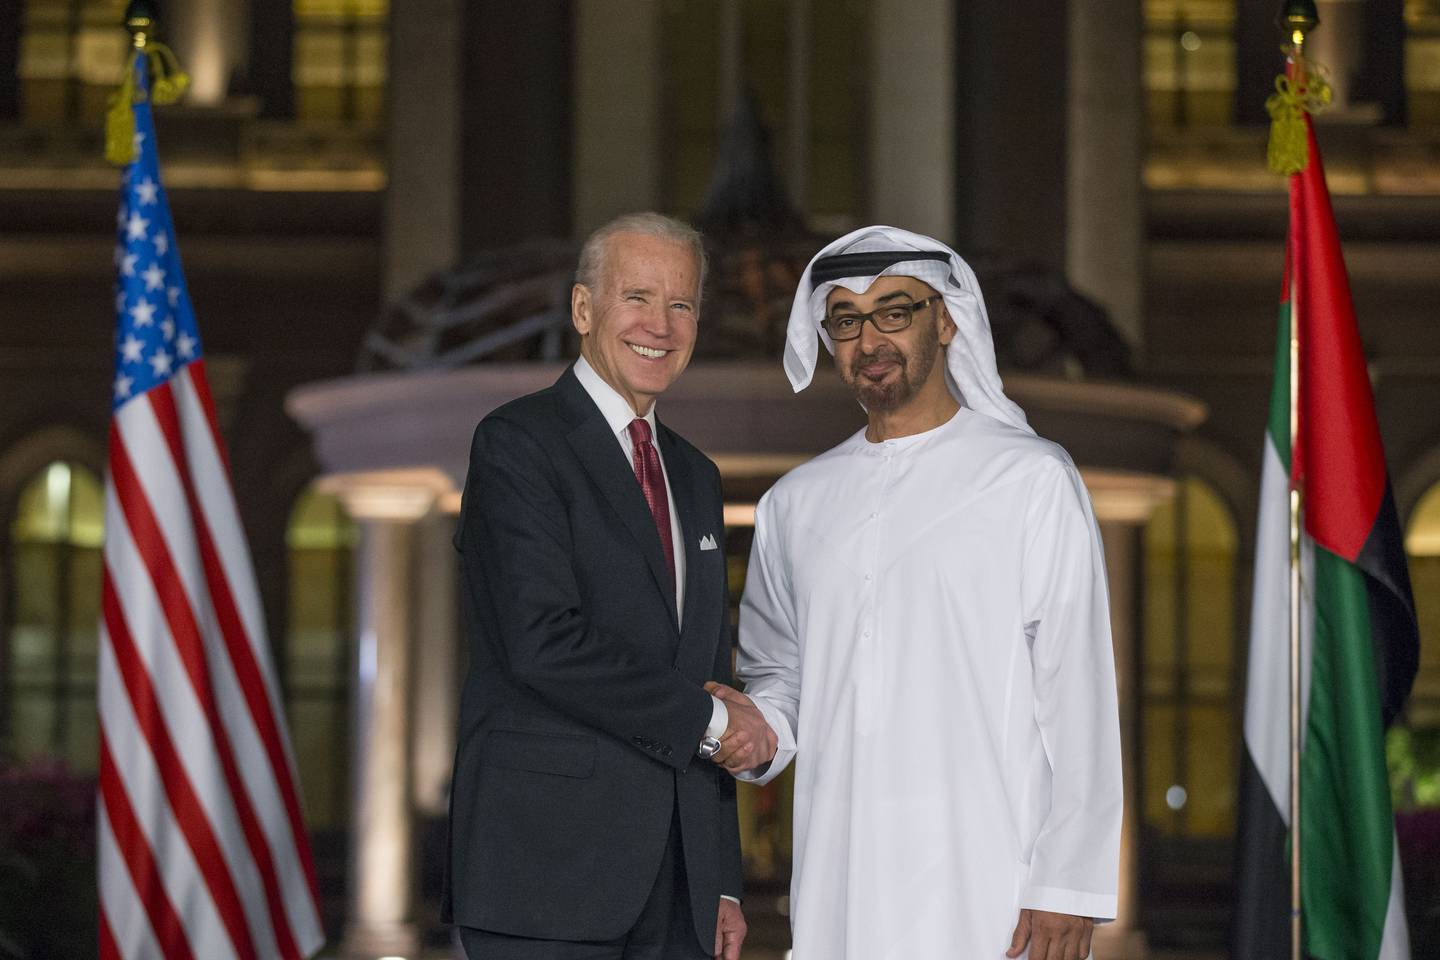 ABU DHABI, UNITED ARAB EMIRATES - March 07, 2016: HH Sheikh Mohamed bin Zayed Al Nahyan, Crown Prince of Abu Dhabi and Deputy Supreme Commander of the UAE Armed Forces (R), and Joe Biden, Vice President of the United States of America (L), stand for a photograph prior to a dinner meeting at Emirates Palace. ( Ryan Carter / Crown Prince Court - Abu Dhabi ) --- *** Local Caption ***  20160307RC_C5_5788.JPG